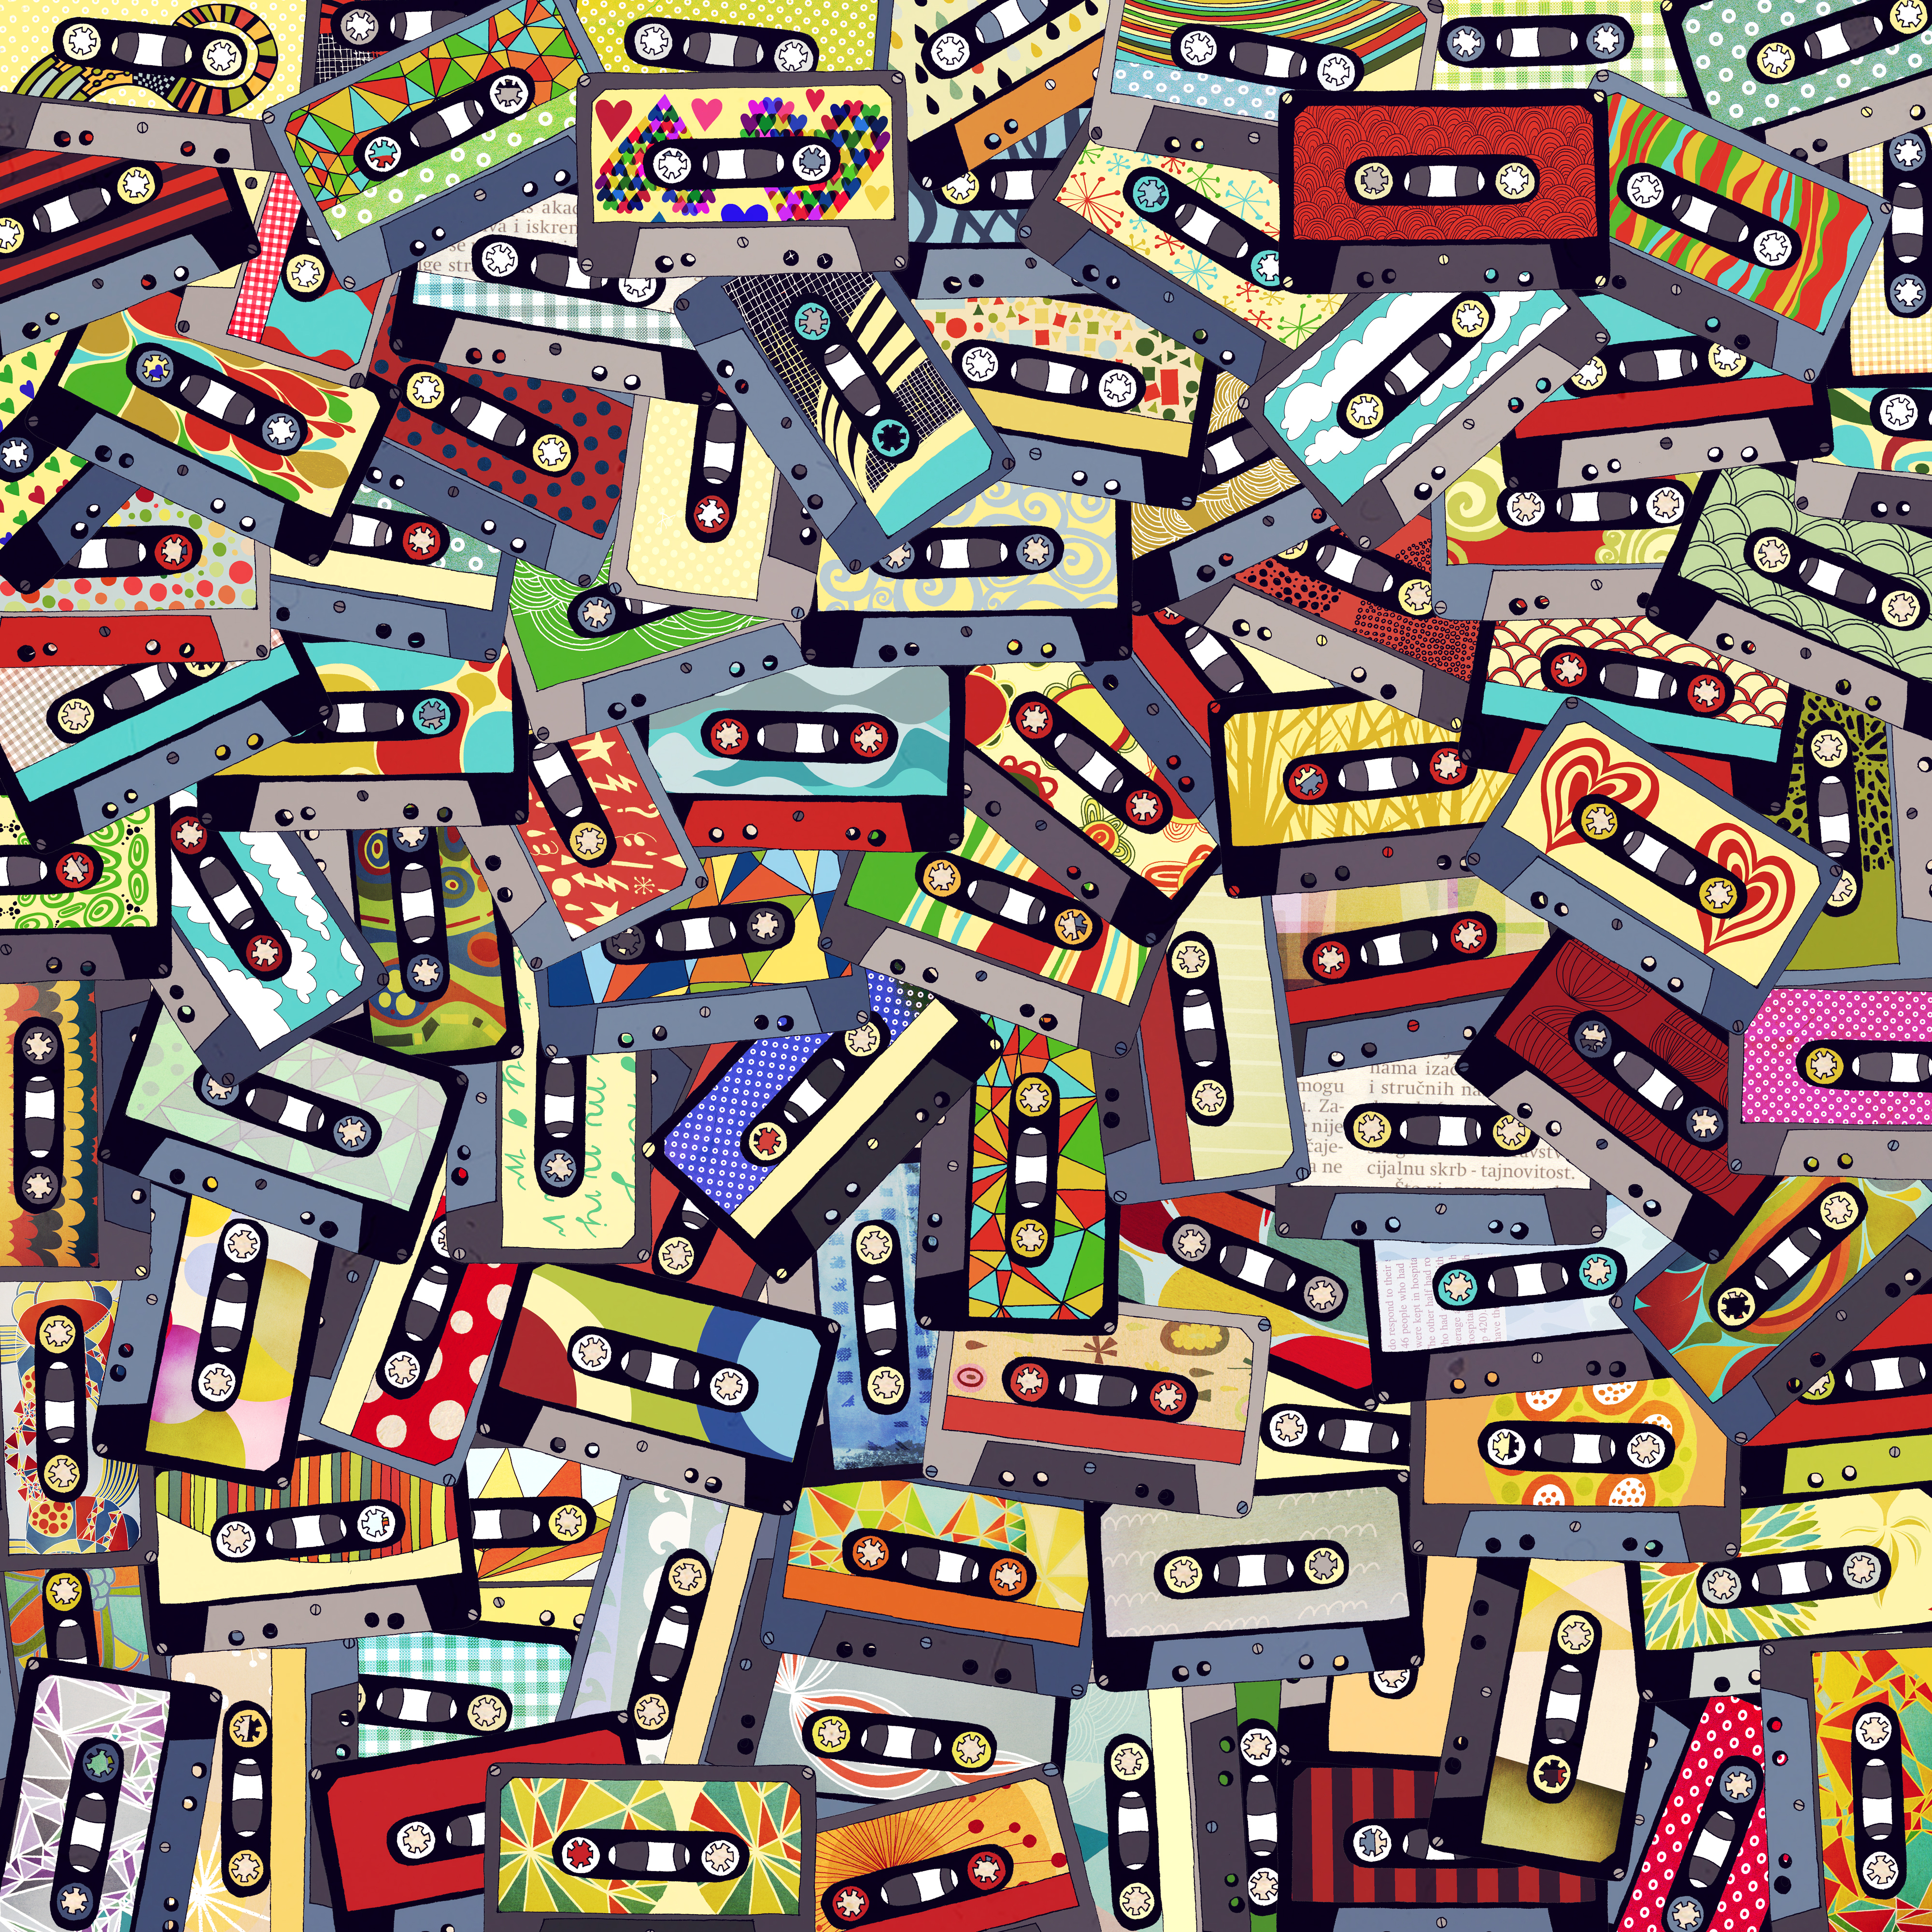 128508 download wallpaper Music, Multicolored, Motley, Collage, Tape Cassettes, Audio Cassettes screensavers and pictures for free